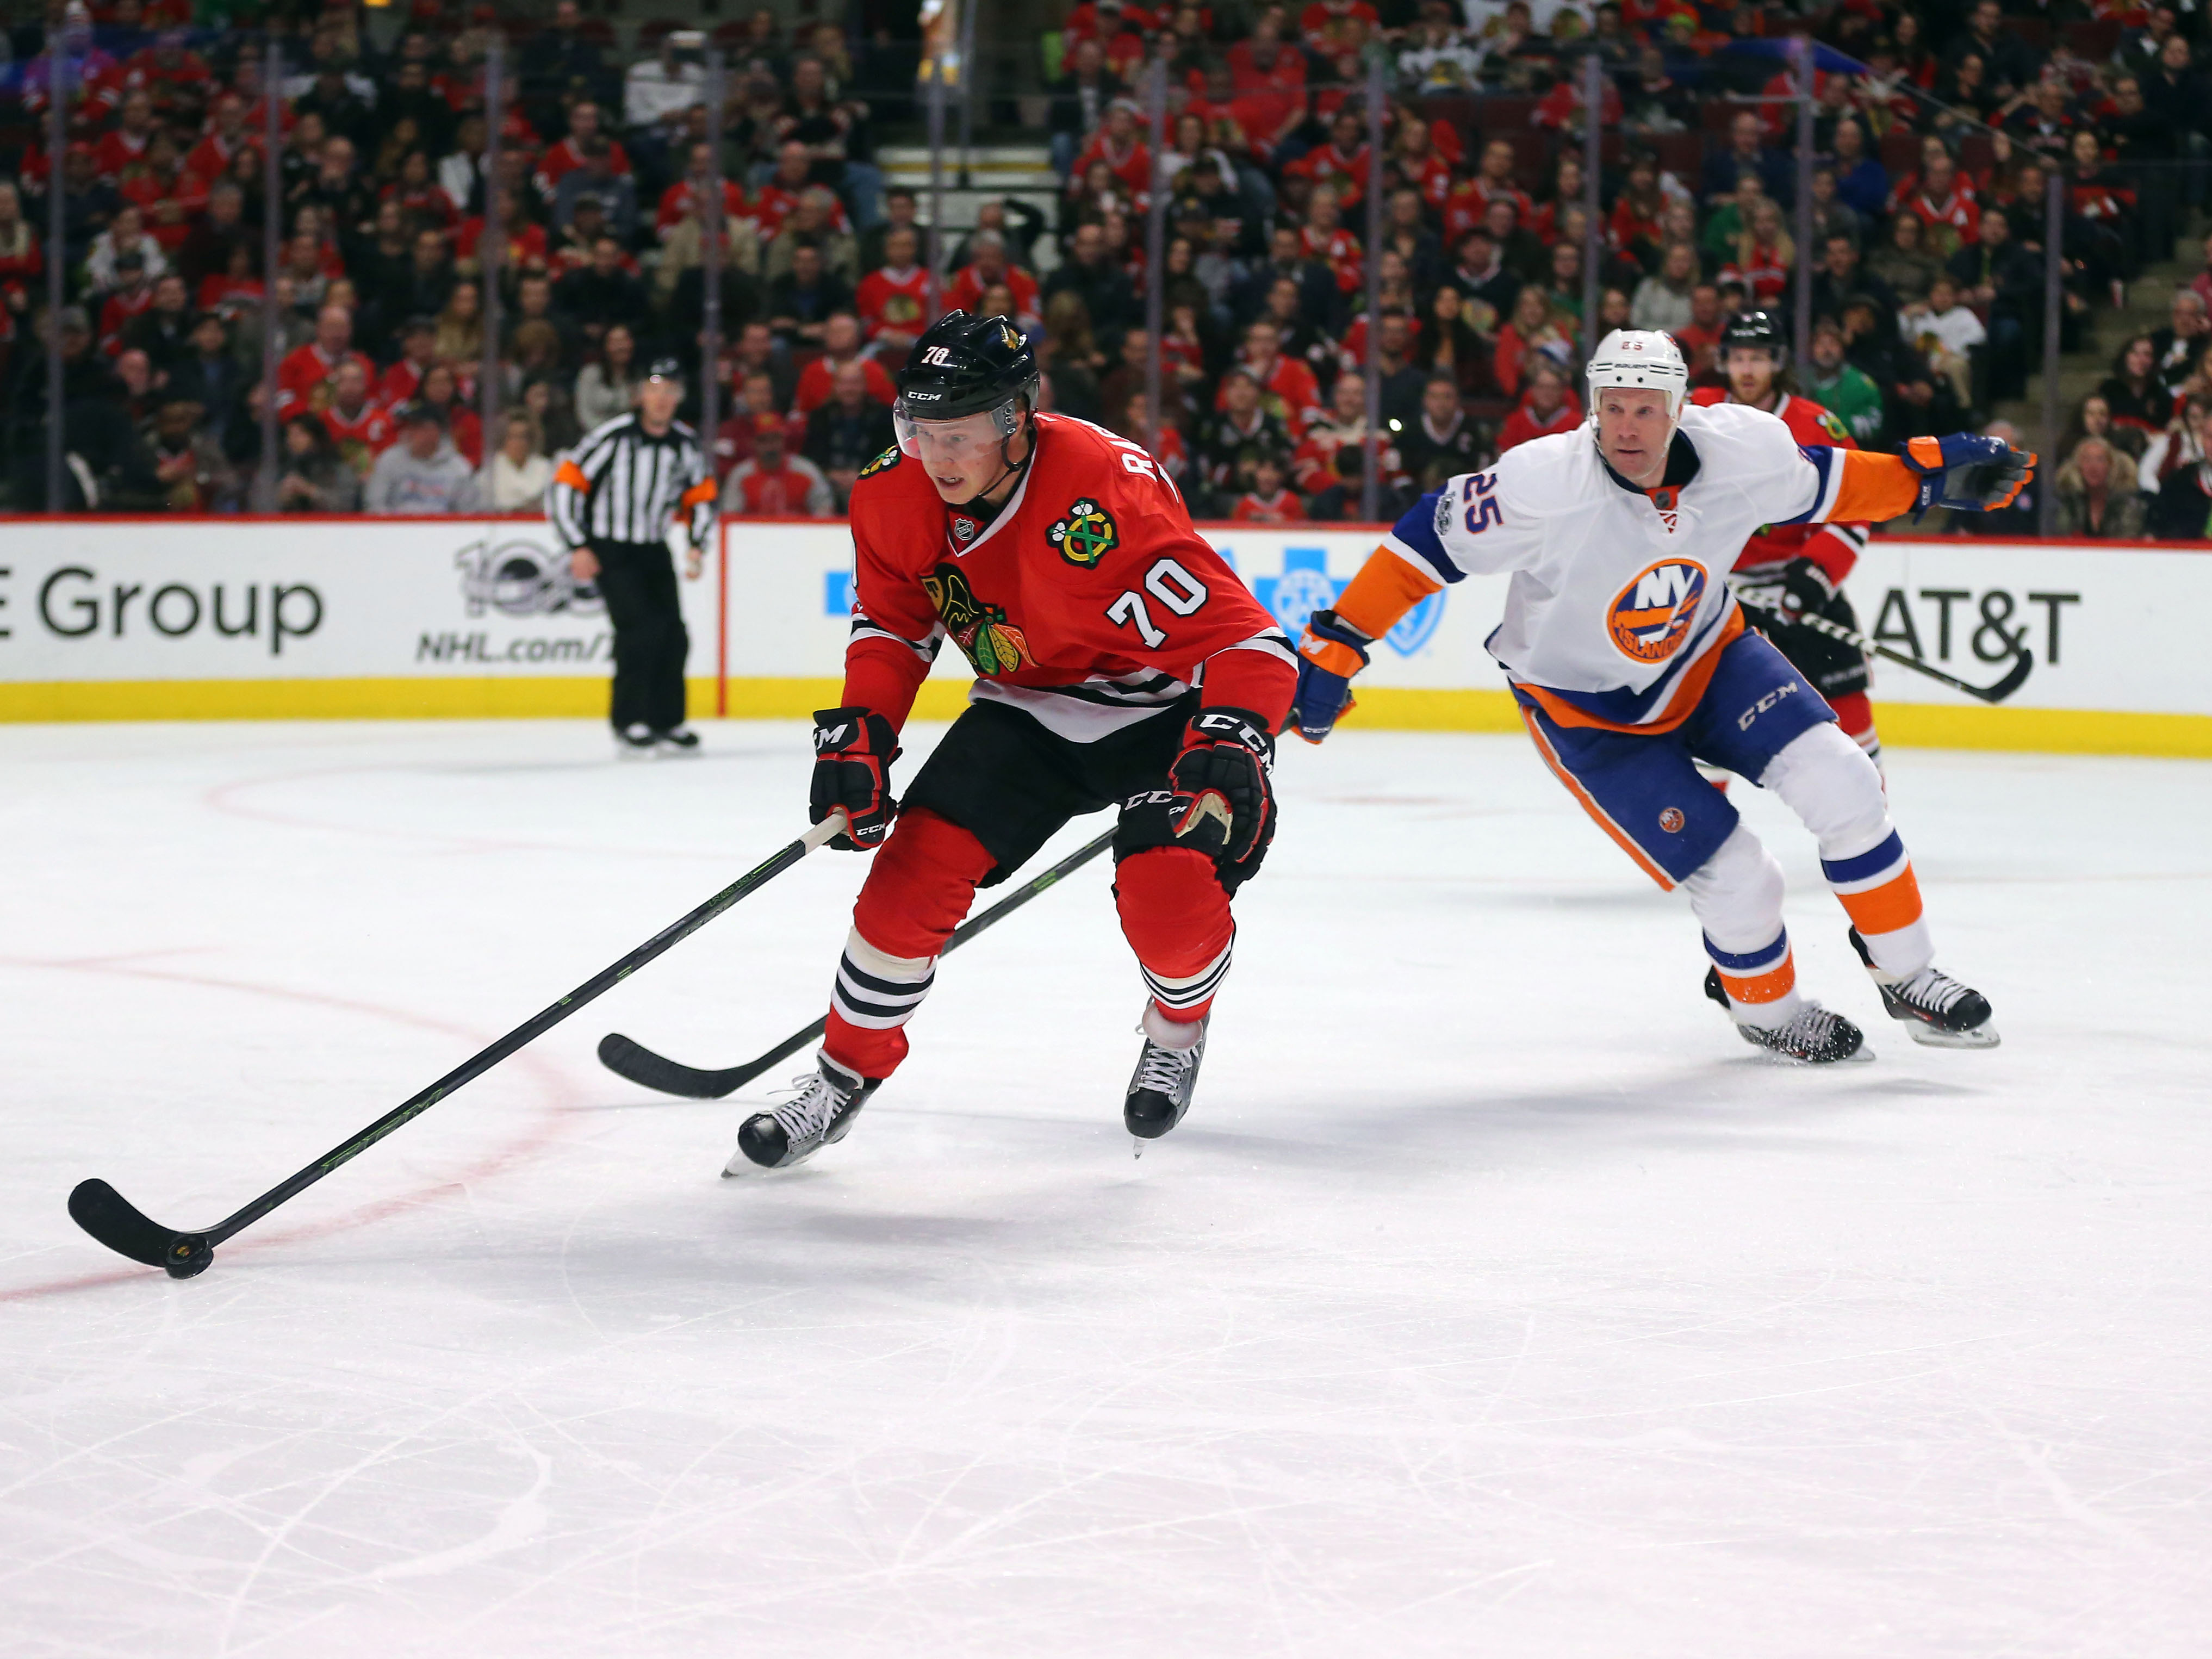 Mar 3, 2017; Chicago, IL, USA; Chicago Blackhawks center Dennis Rasmussen (70) is pursued by New York Islanders left wing Jason Chimera (25) during the second period at the United Center. Mandatory Credit: Dennis Wierzbicki-USA TODAY Sports